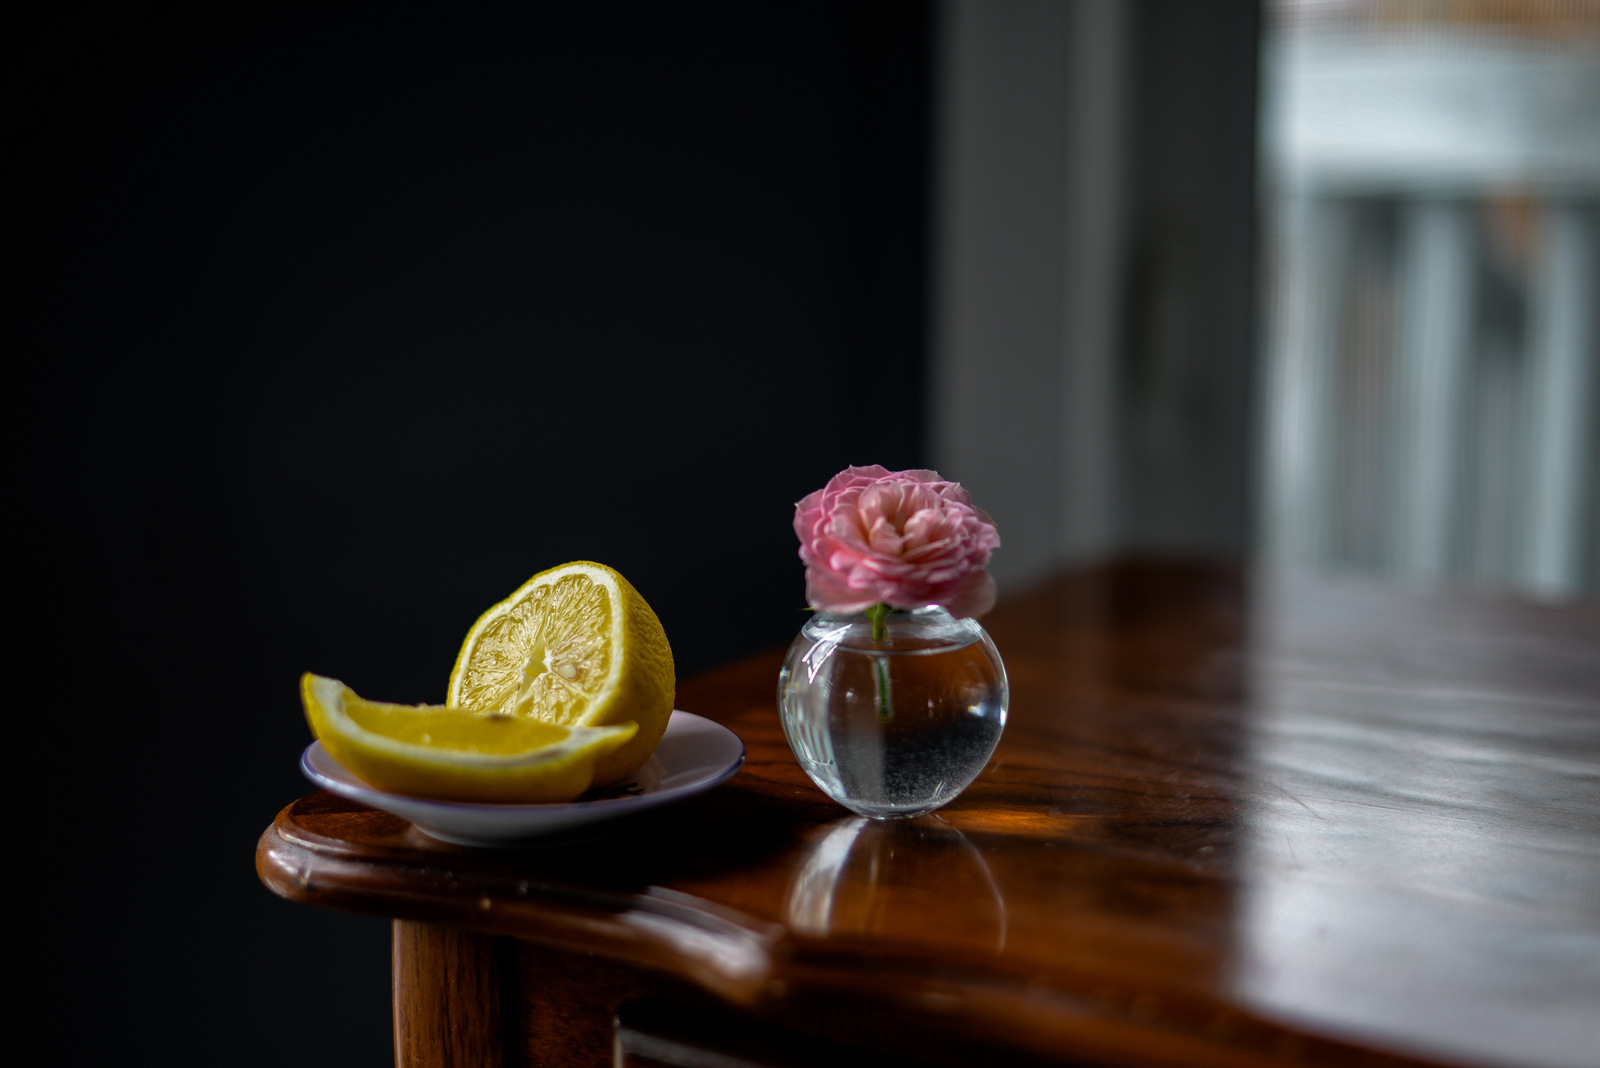 still life with rose and lemon